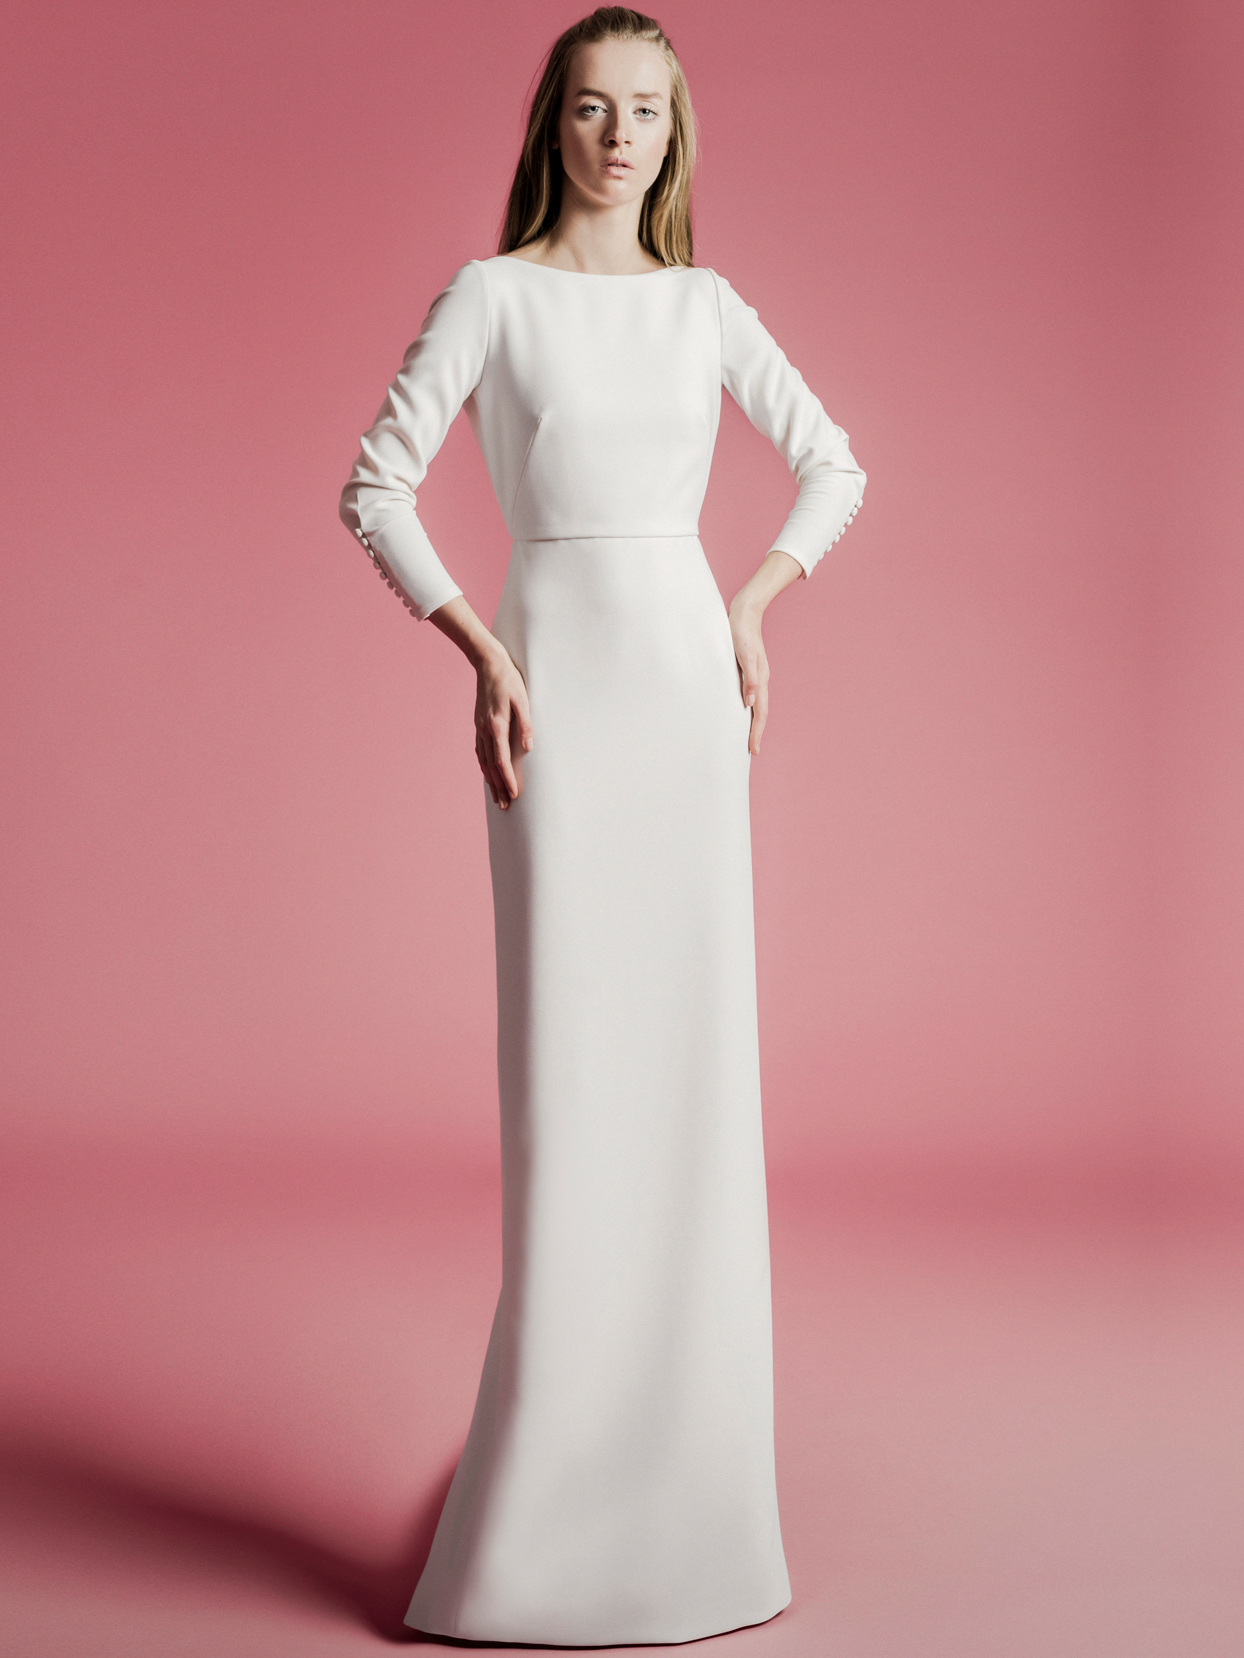 Sophie Et Voilà high neck long sleeve fitted wedding dress spring 2021